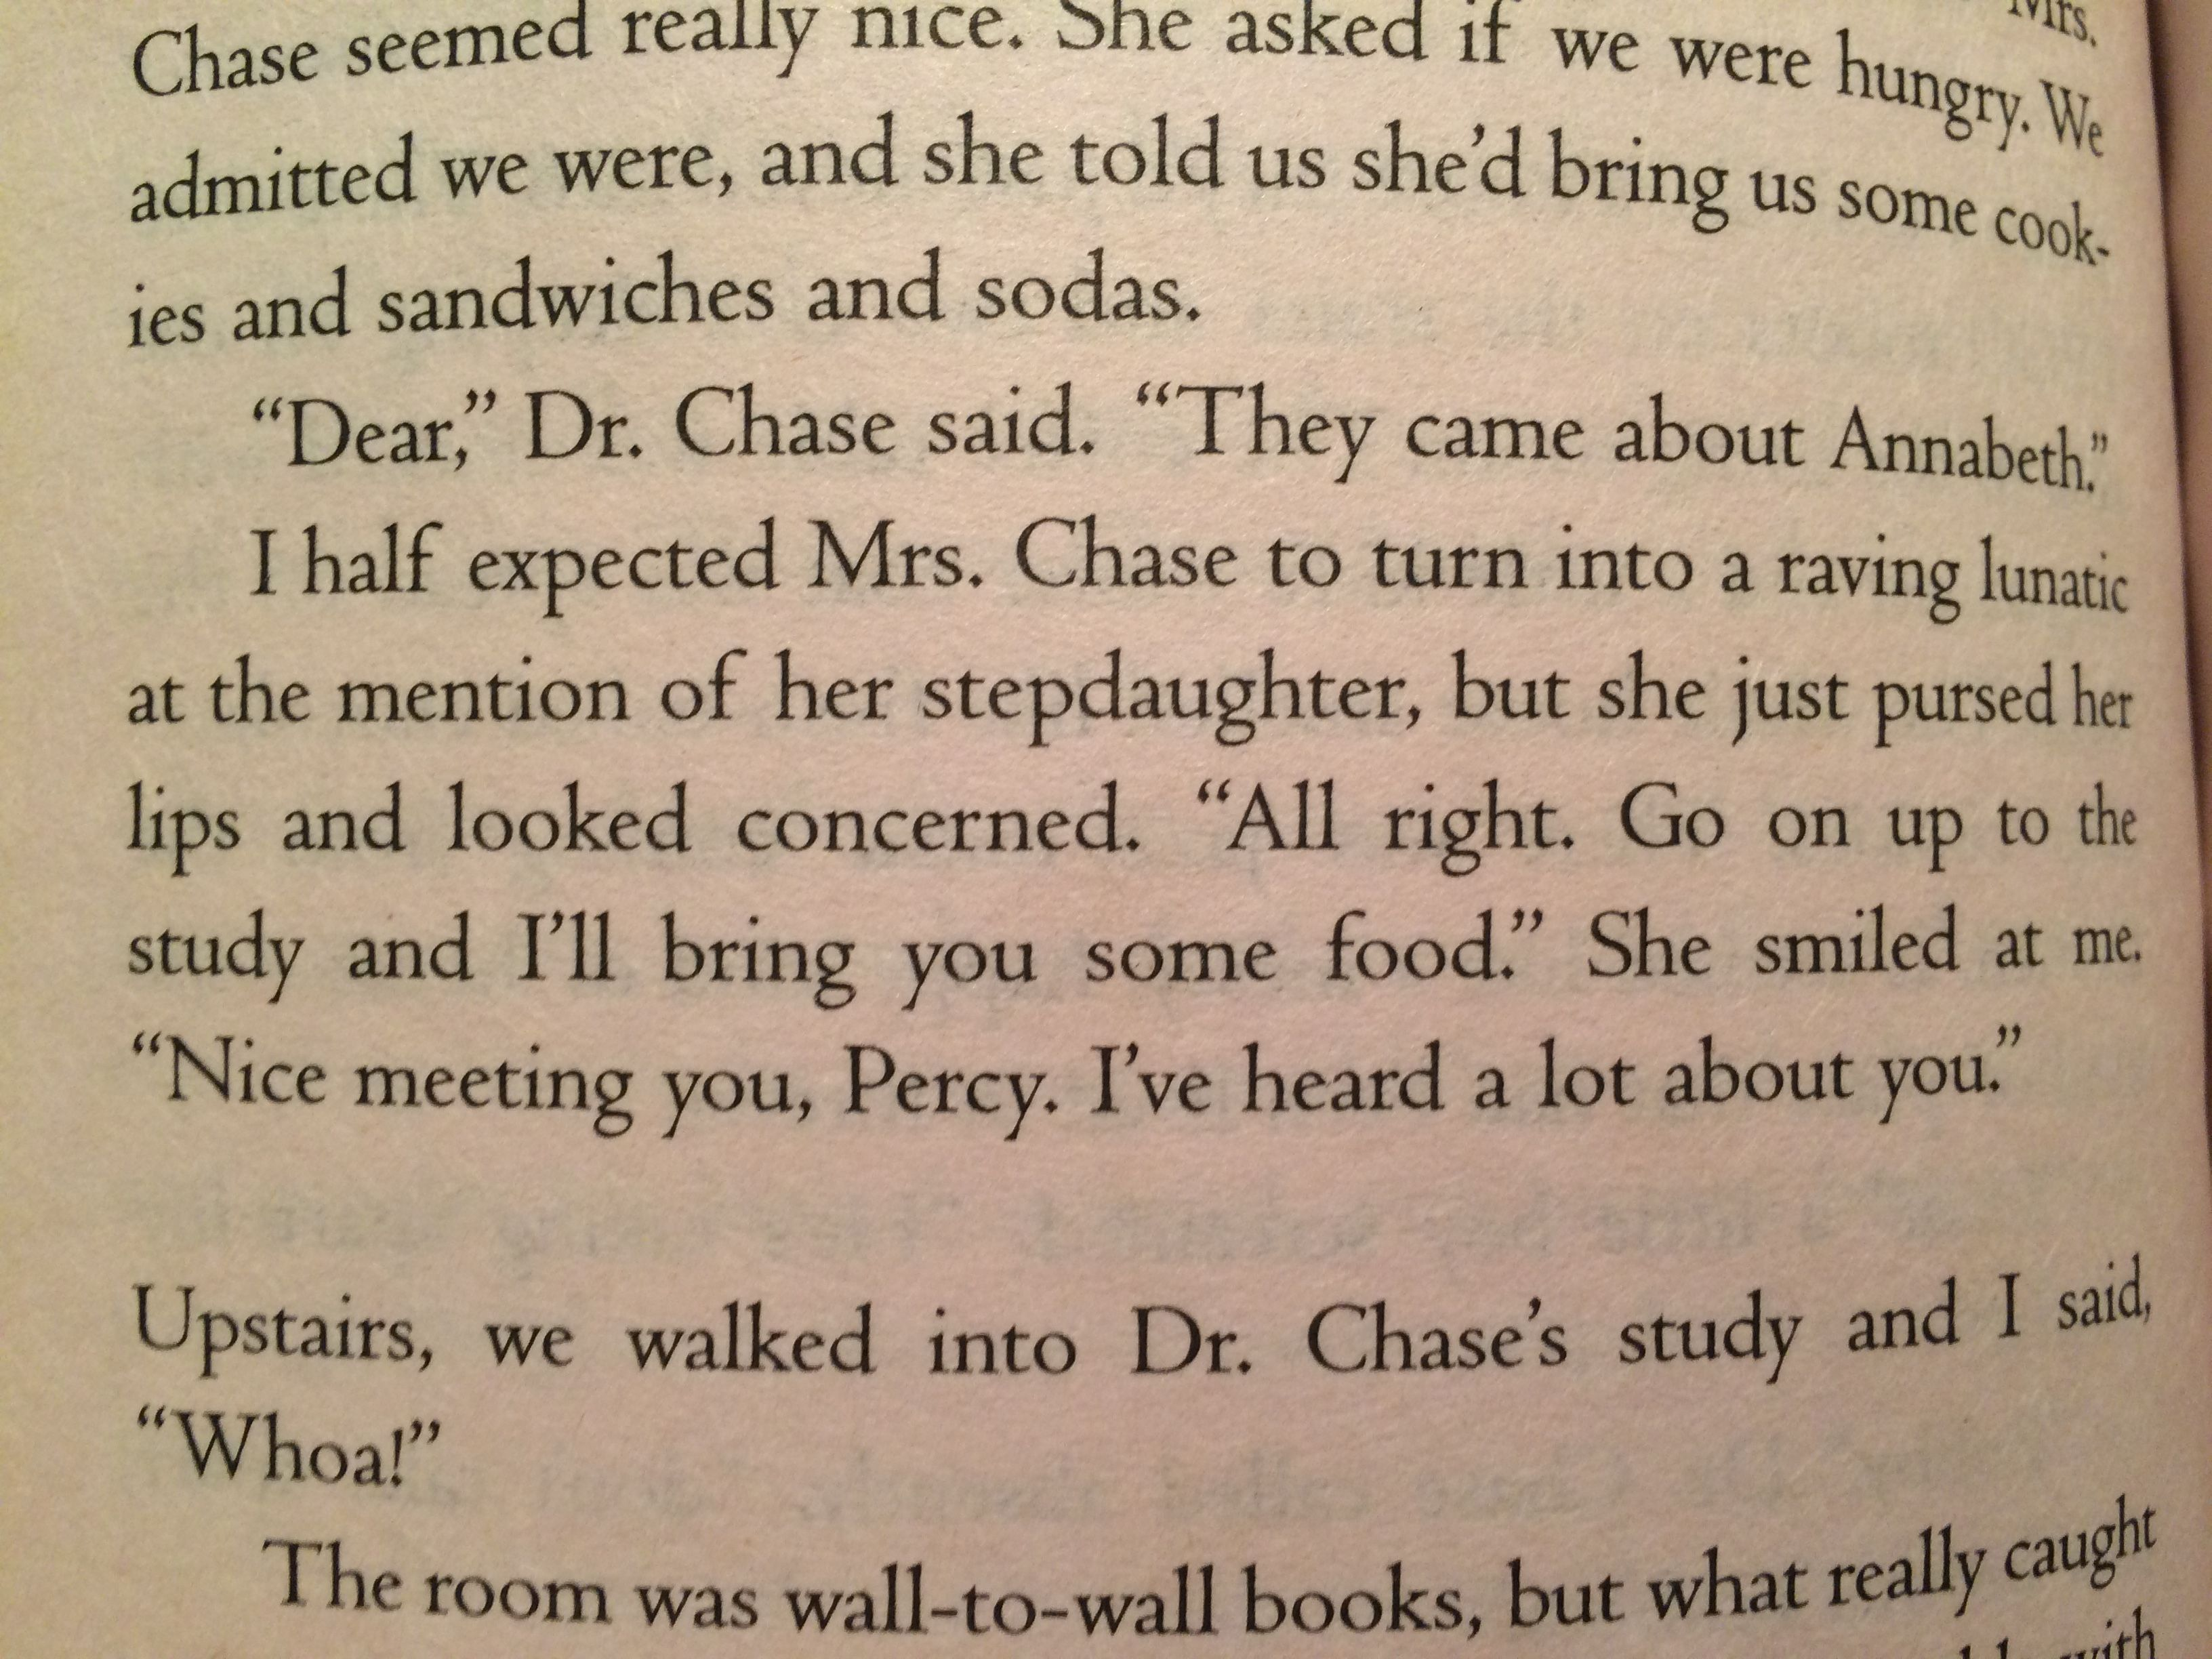 Did Anyone Else Die At This Percyjackson Annabethchase